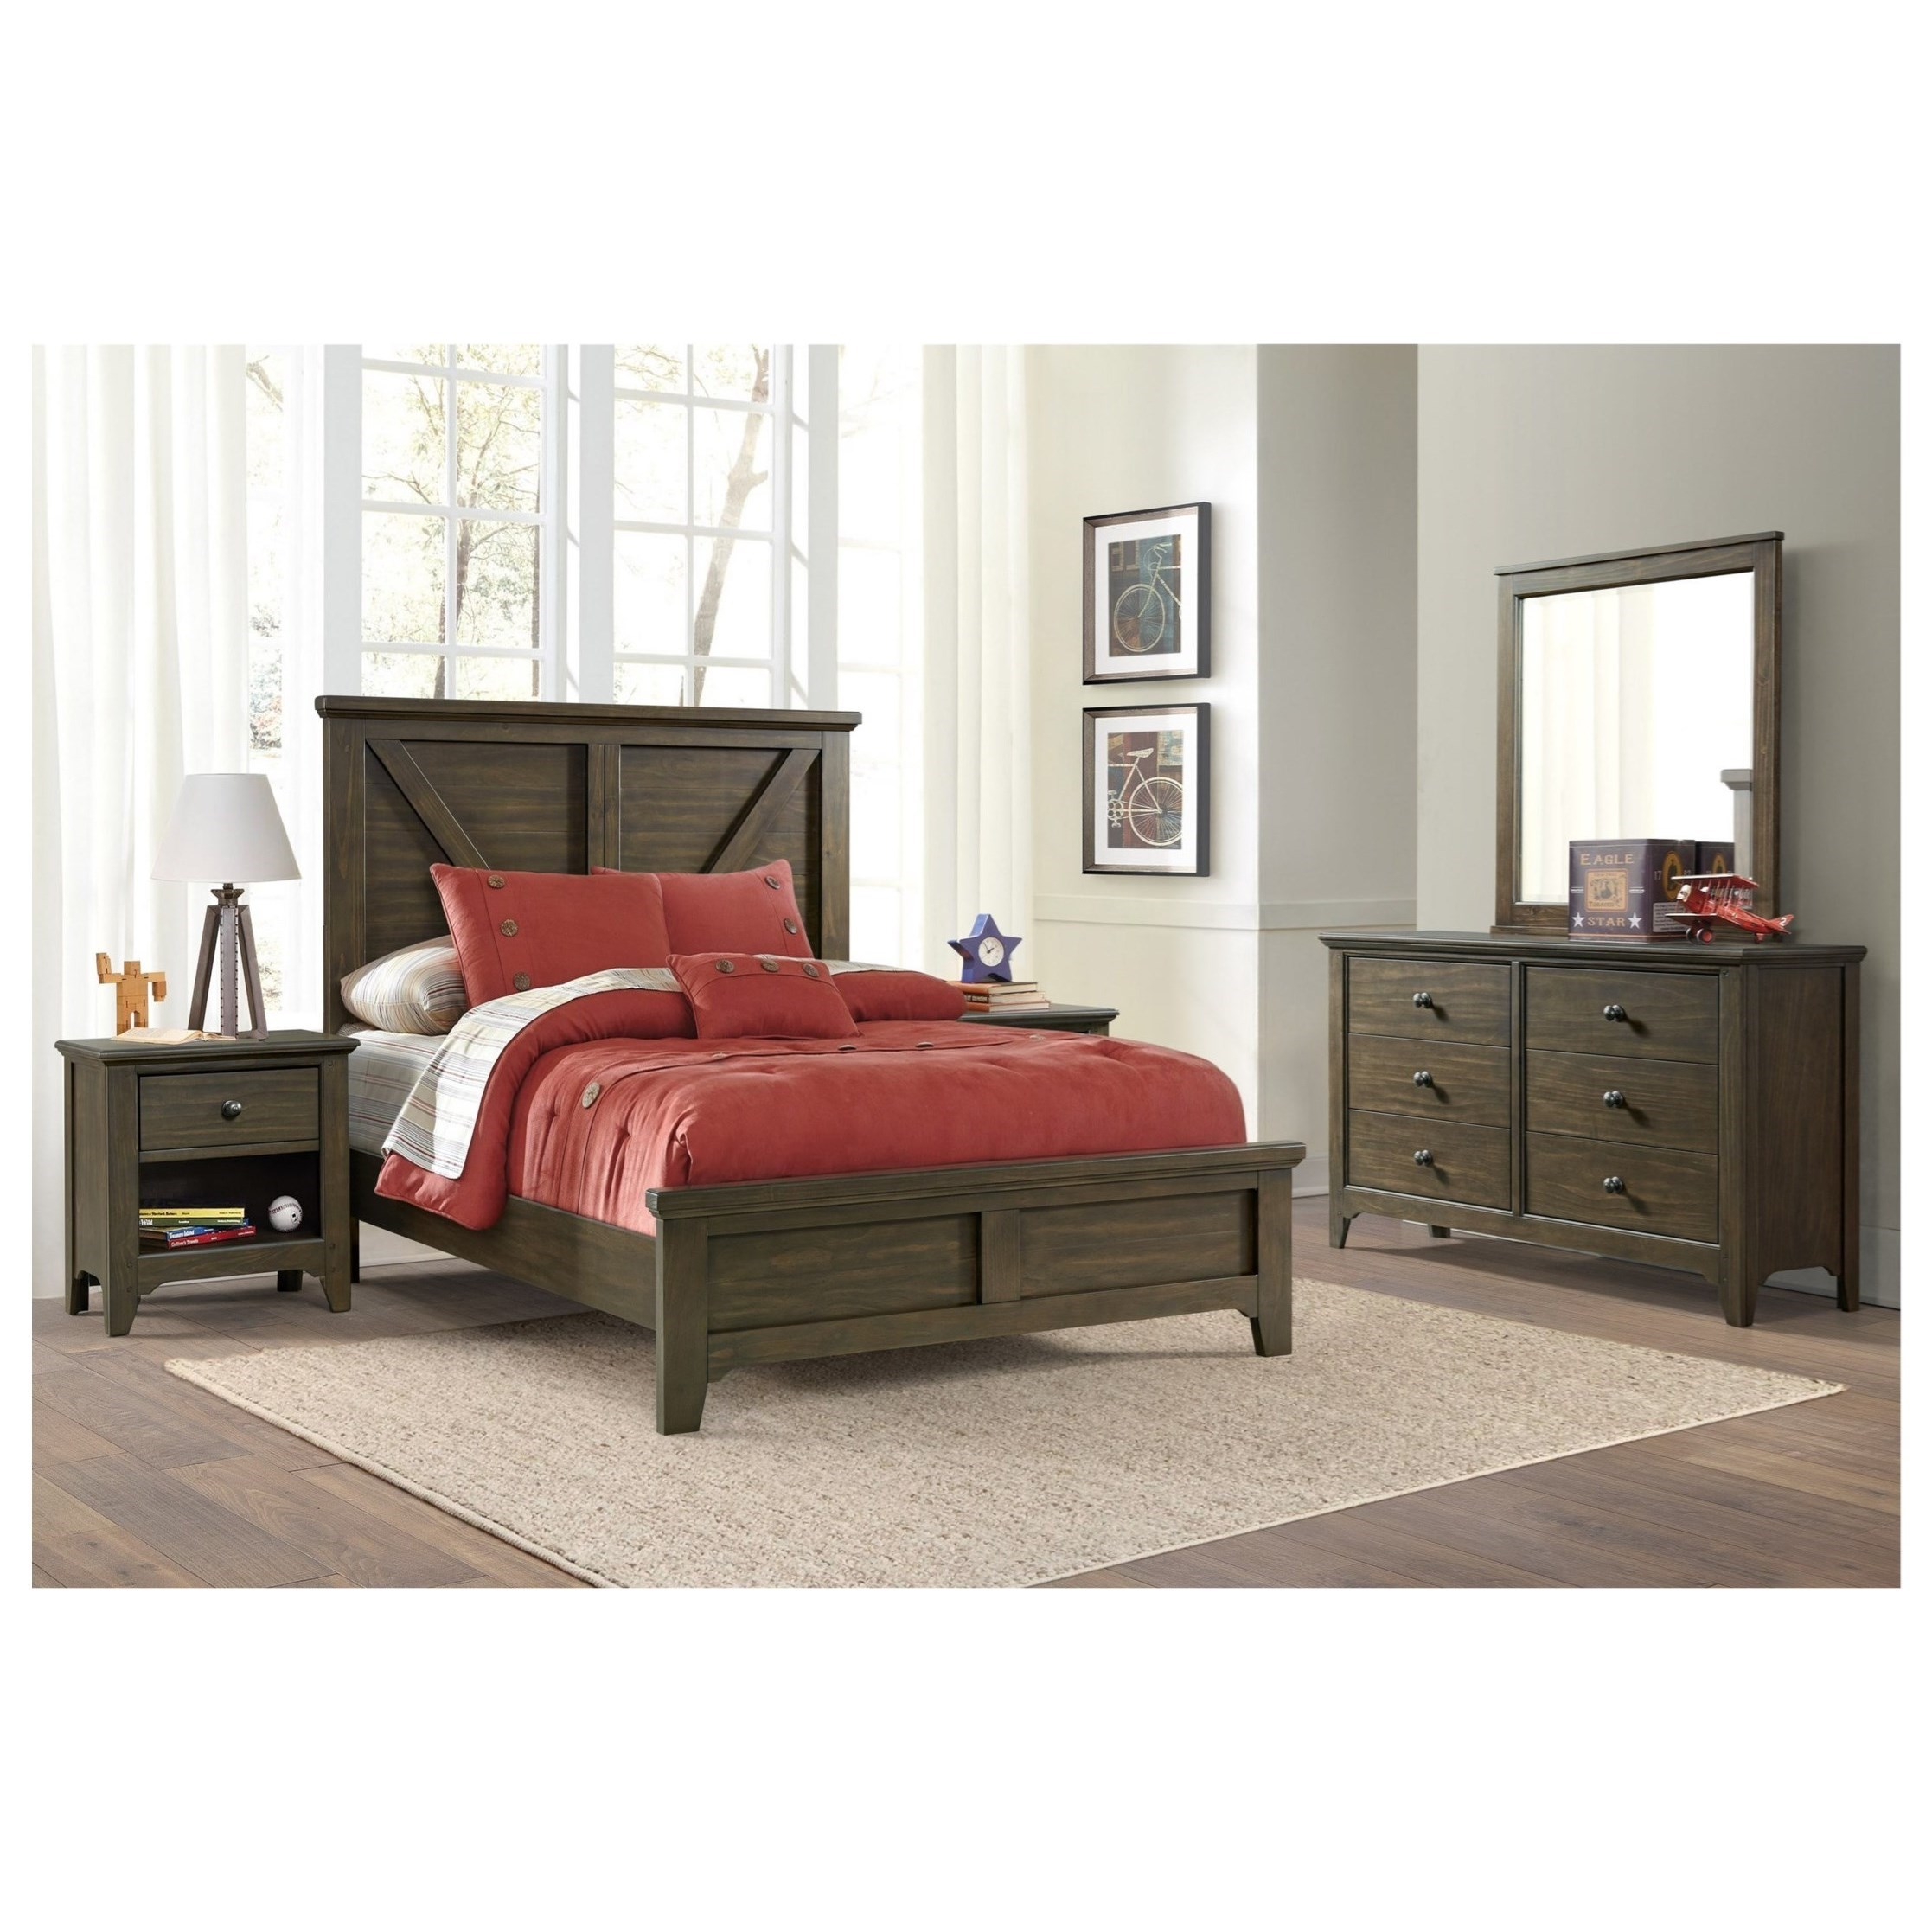 Tahoe Full Bedroom Group by Sussex Bay at Johnny Janosik